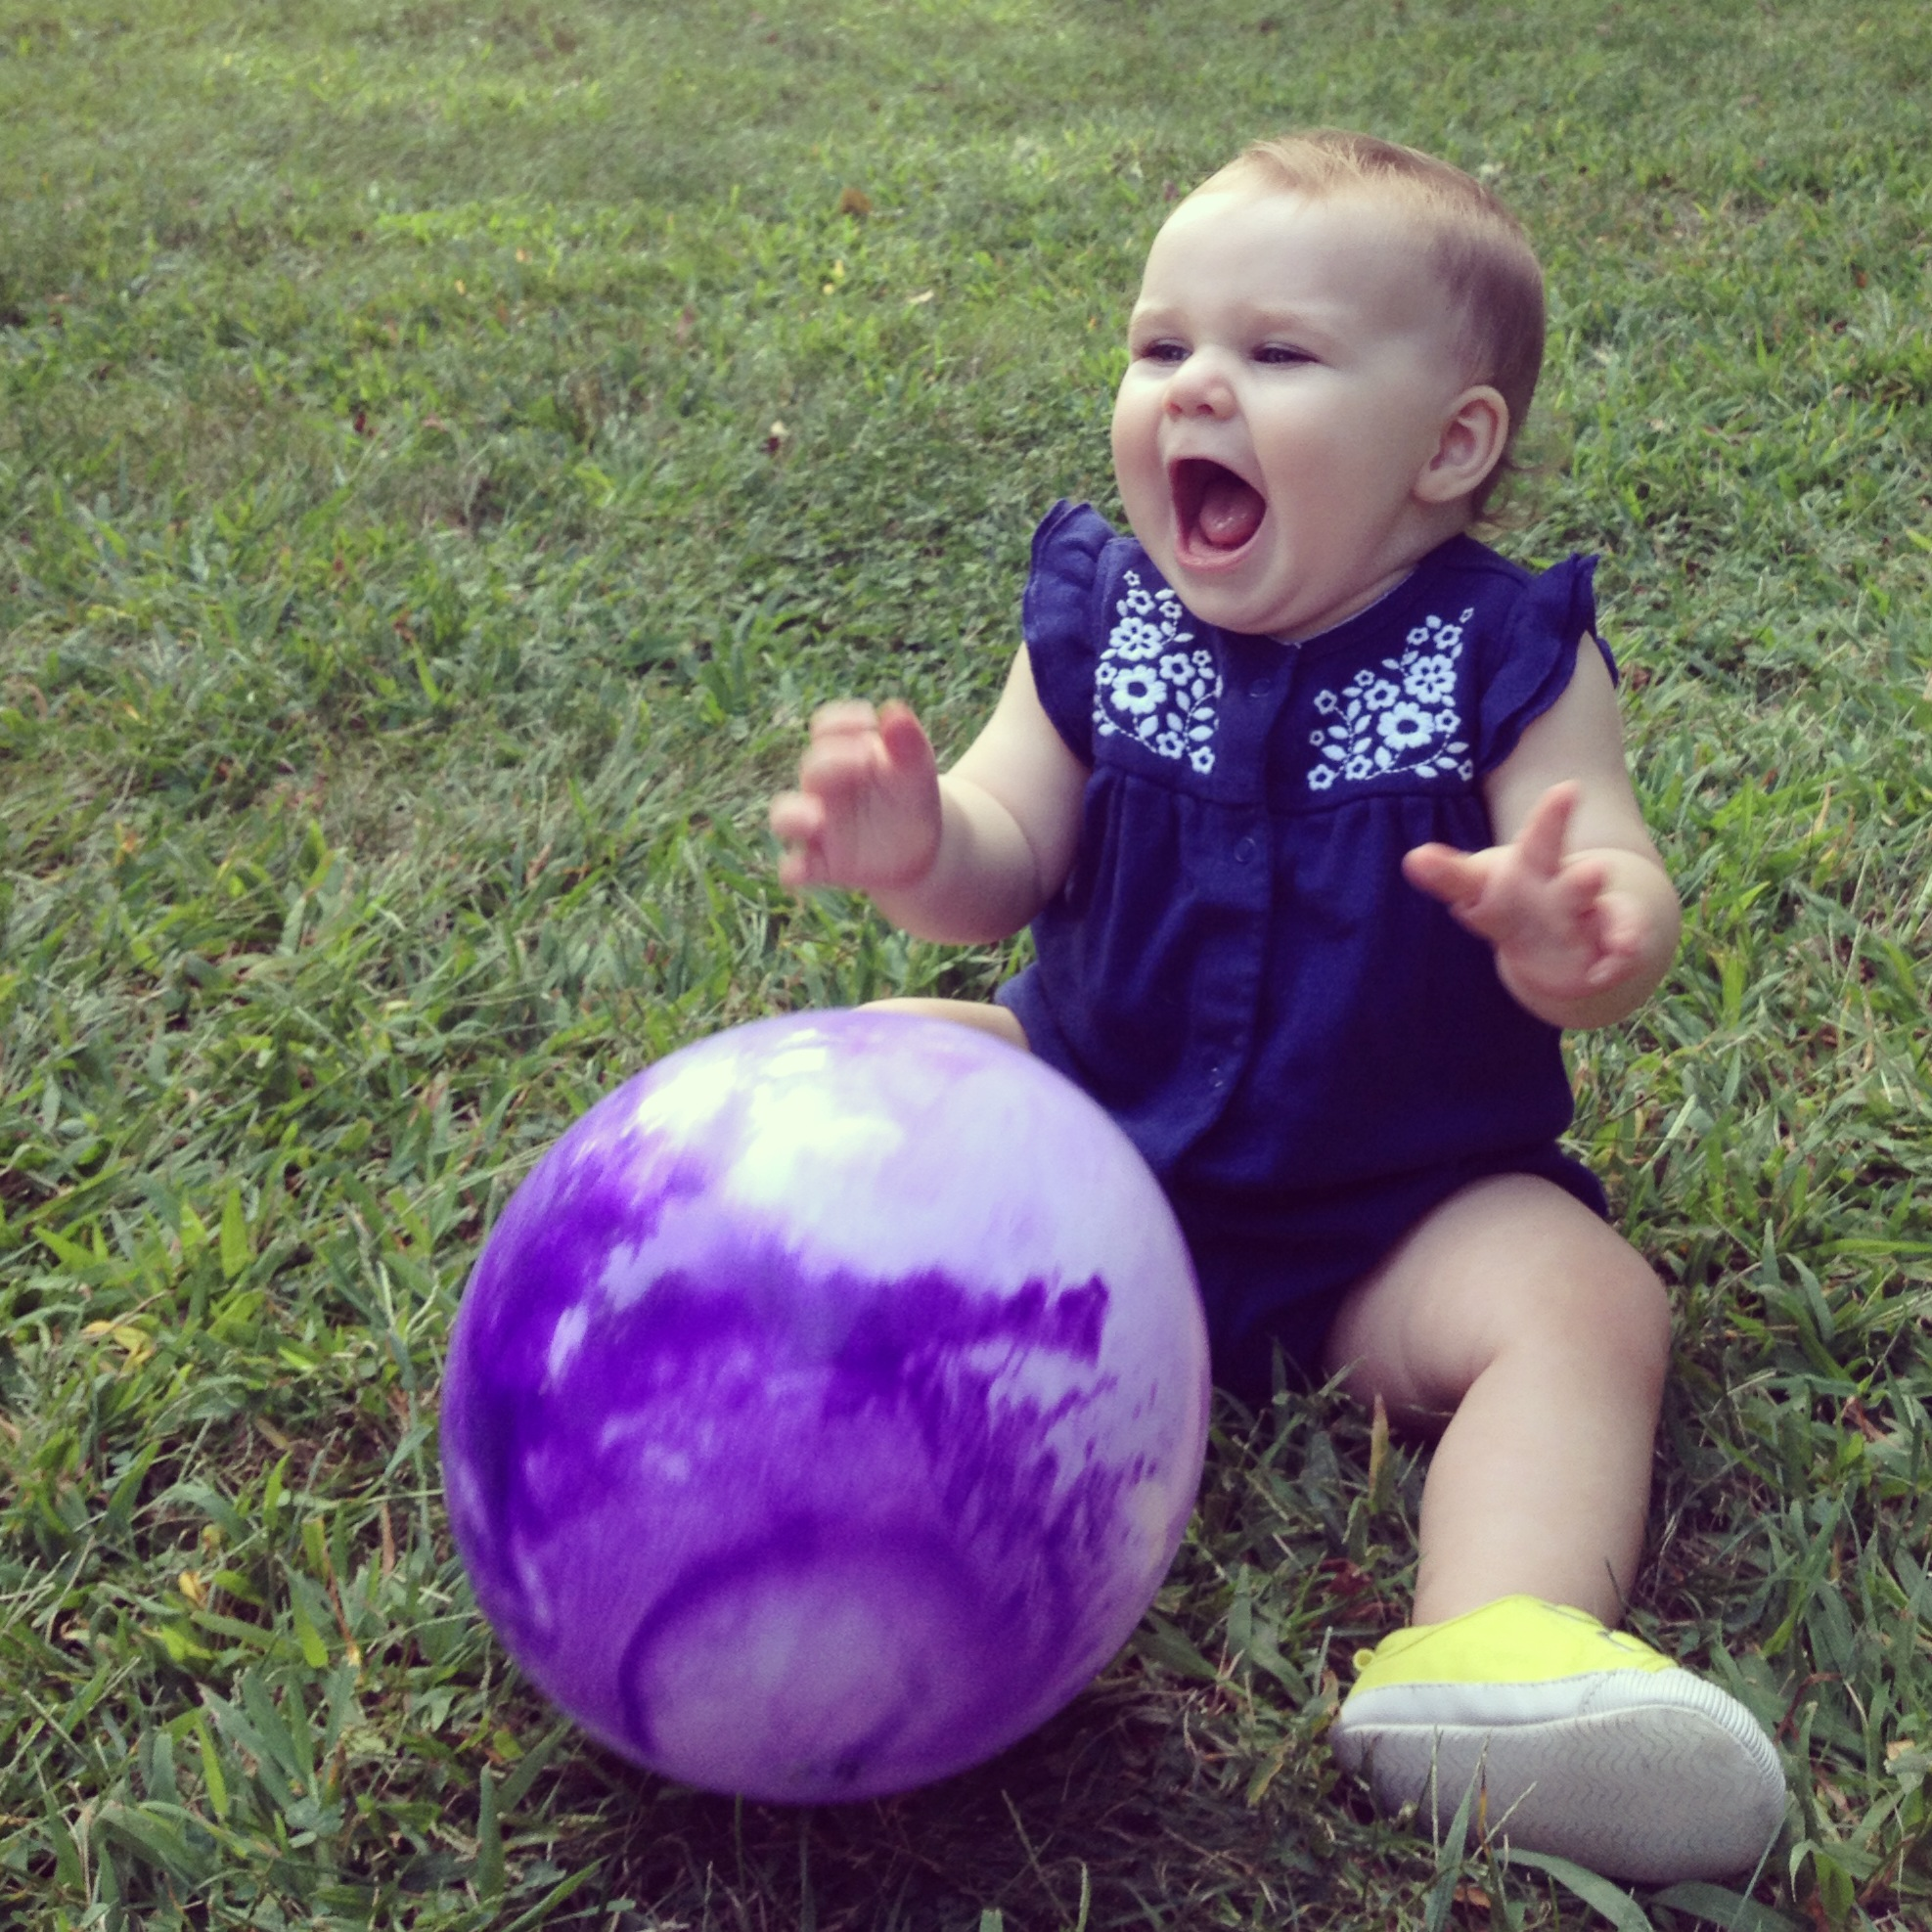 Playing ball at the park (and a few minutes later she took her first steps)!